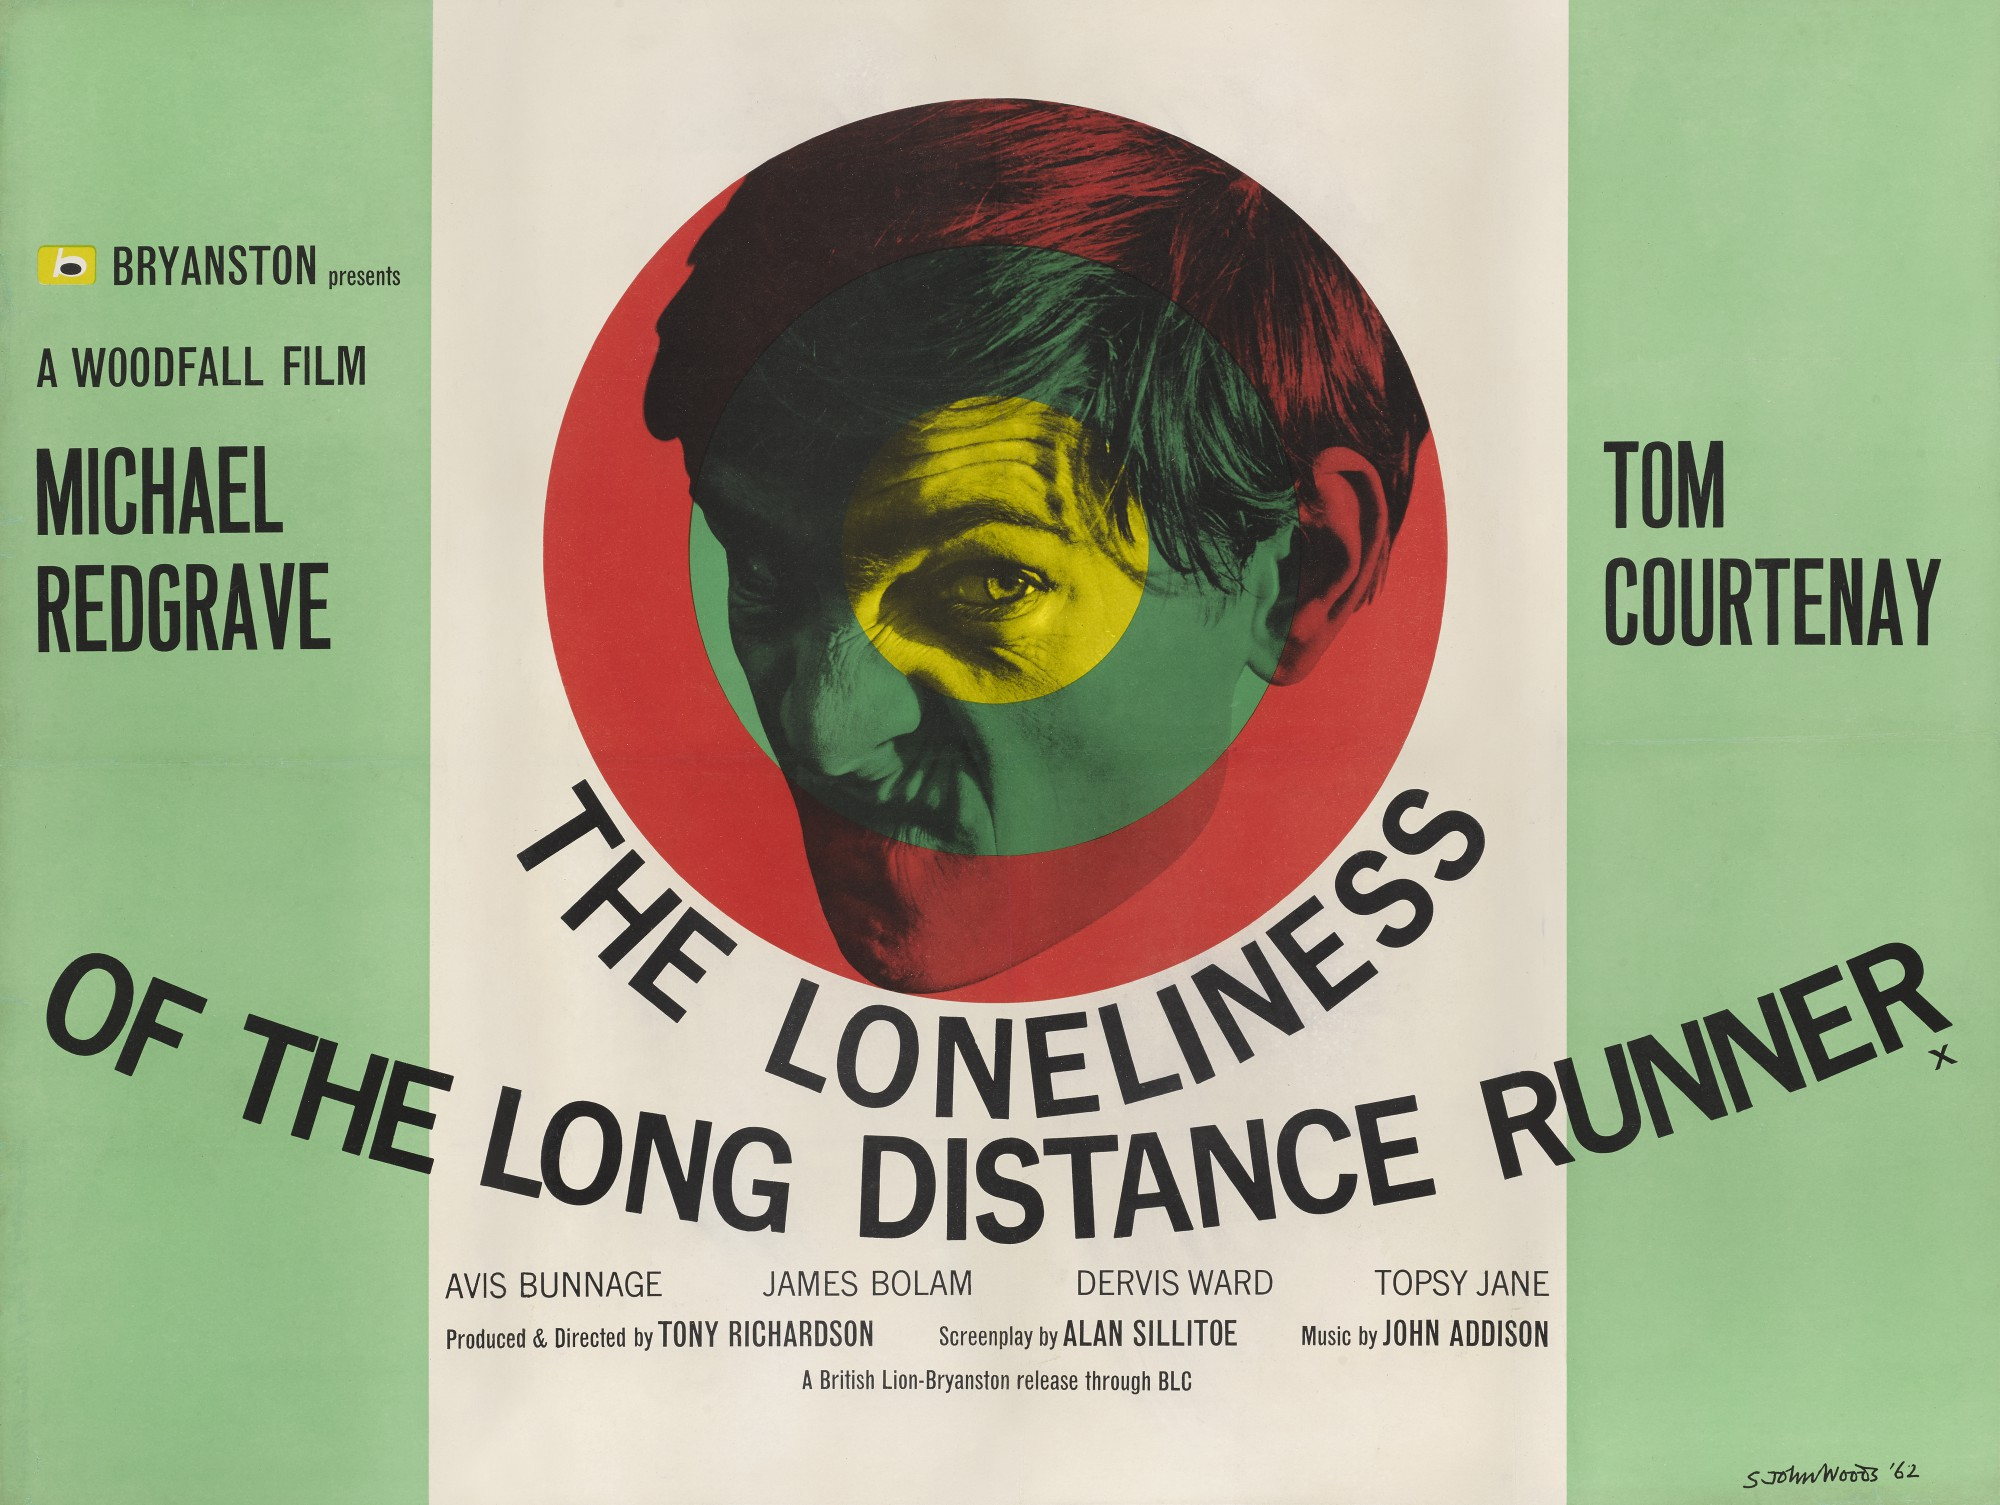 THE LONELINESS OF THE LONG DISTANCE RUNNER (1962) POSTER, BRITISH